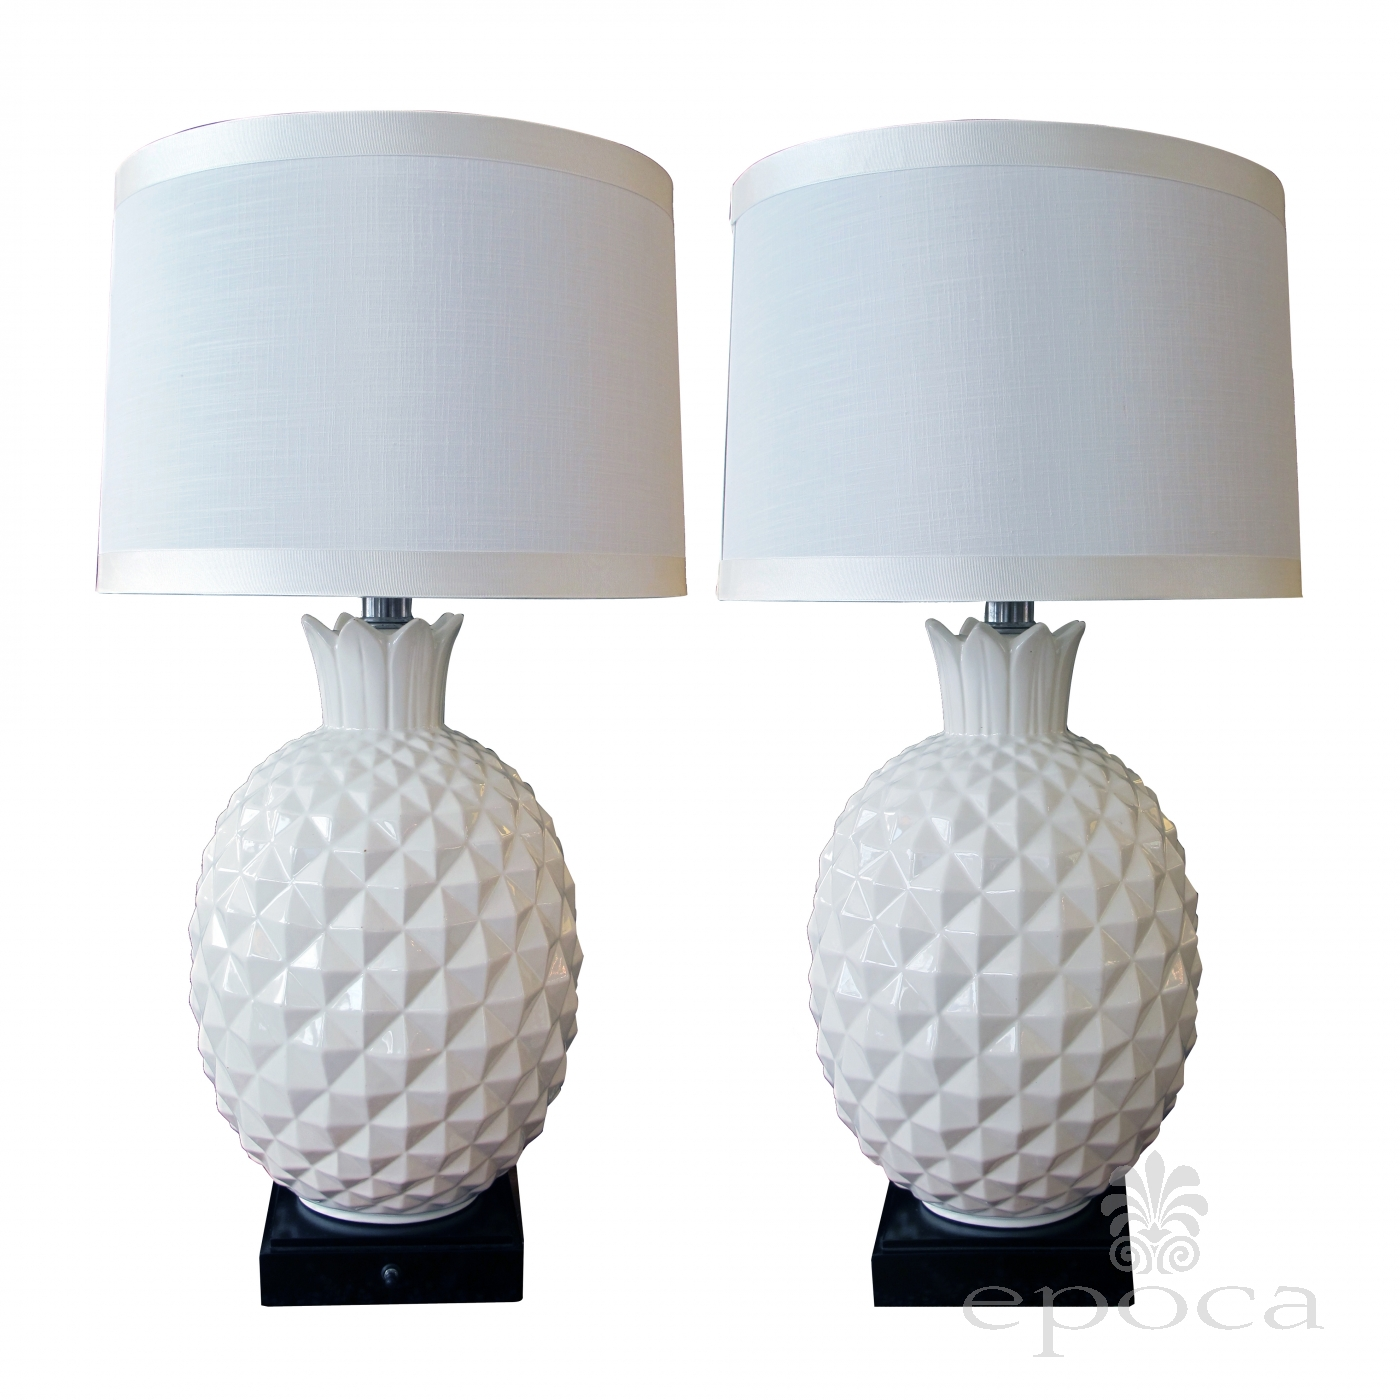 A Robust And Large Scaled Pair Of Italian 1960u0027s White Ceramic Pineapple Form  Lamps